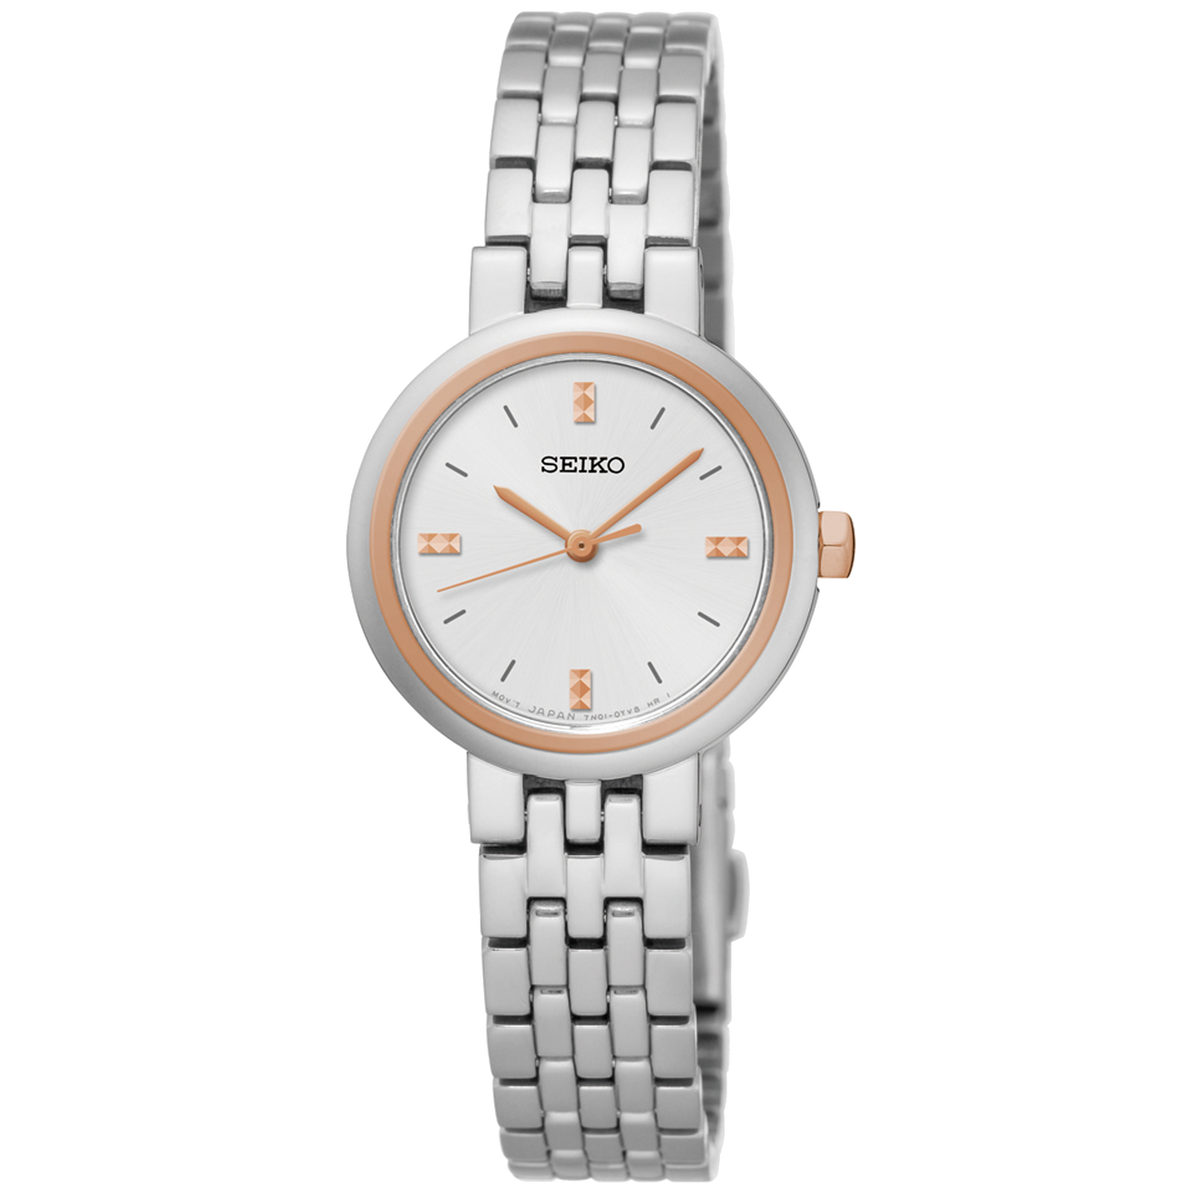 Seiko Watch - Stainless Steel with Rose accents